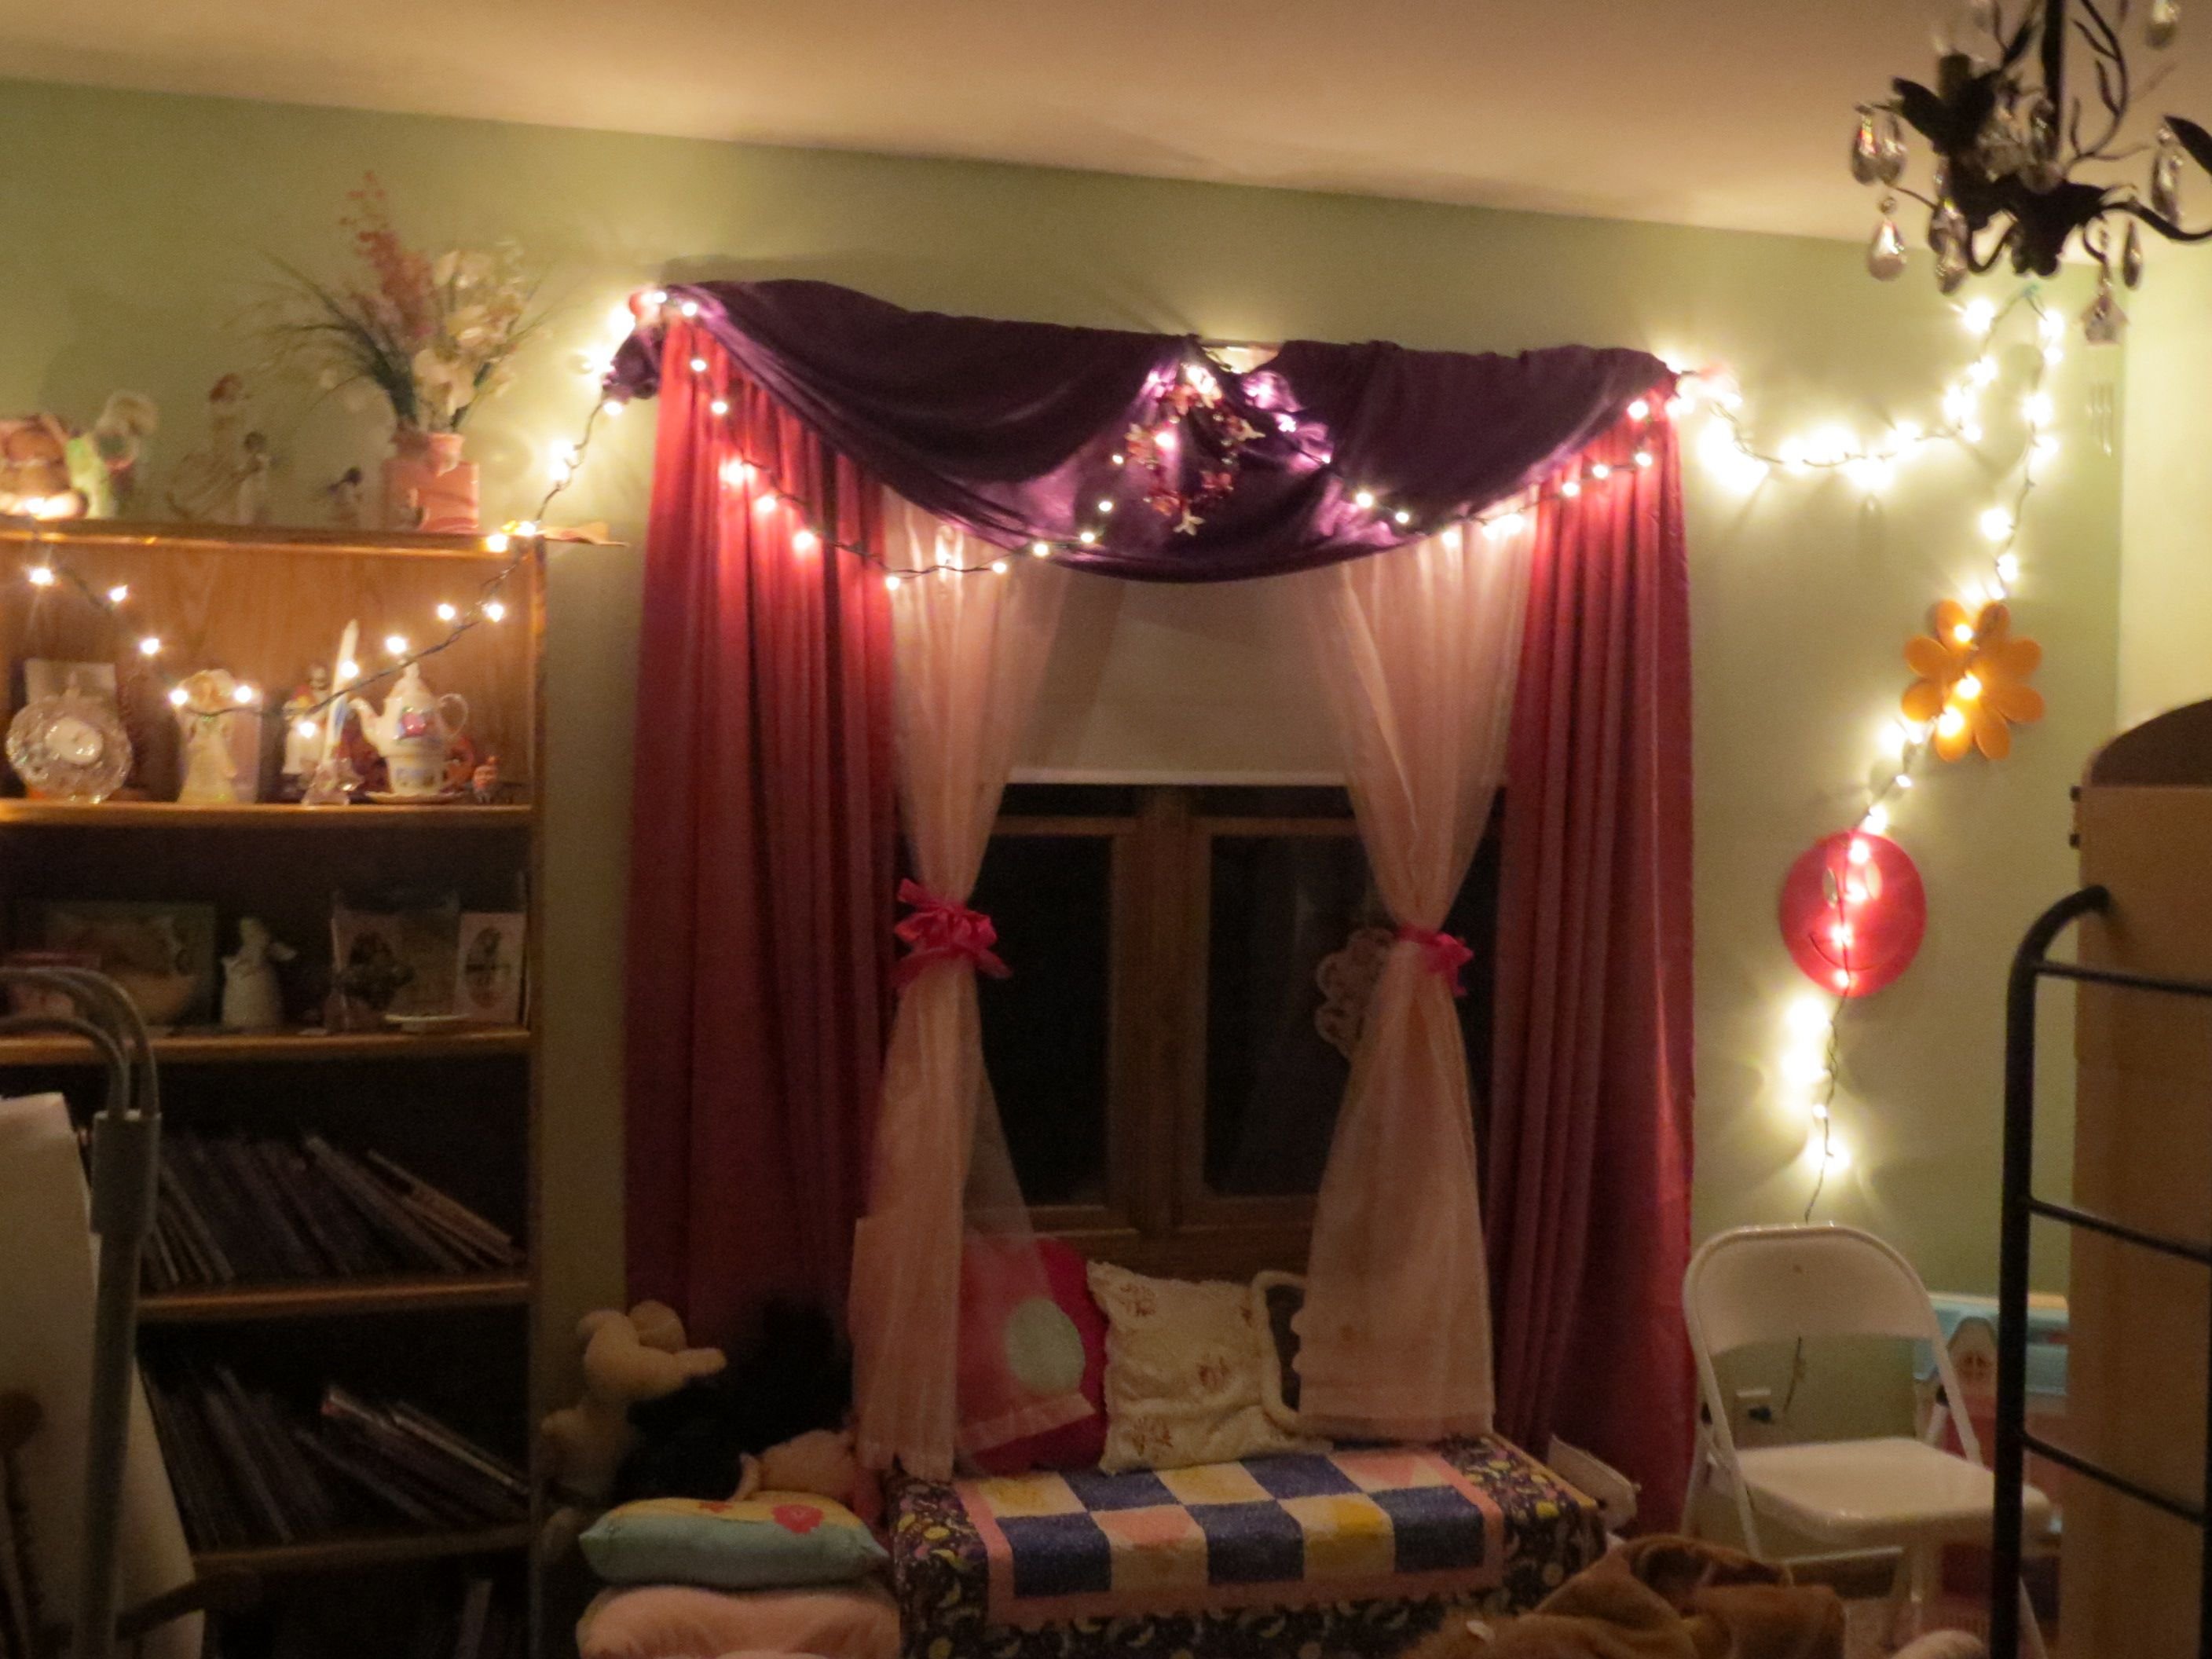 I decorated her bedroom with lights.  We also had a star projector, and lots of night lights.  We didn't get to use the glow sticks, but I think that would have been fun too.